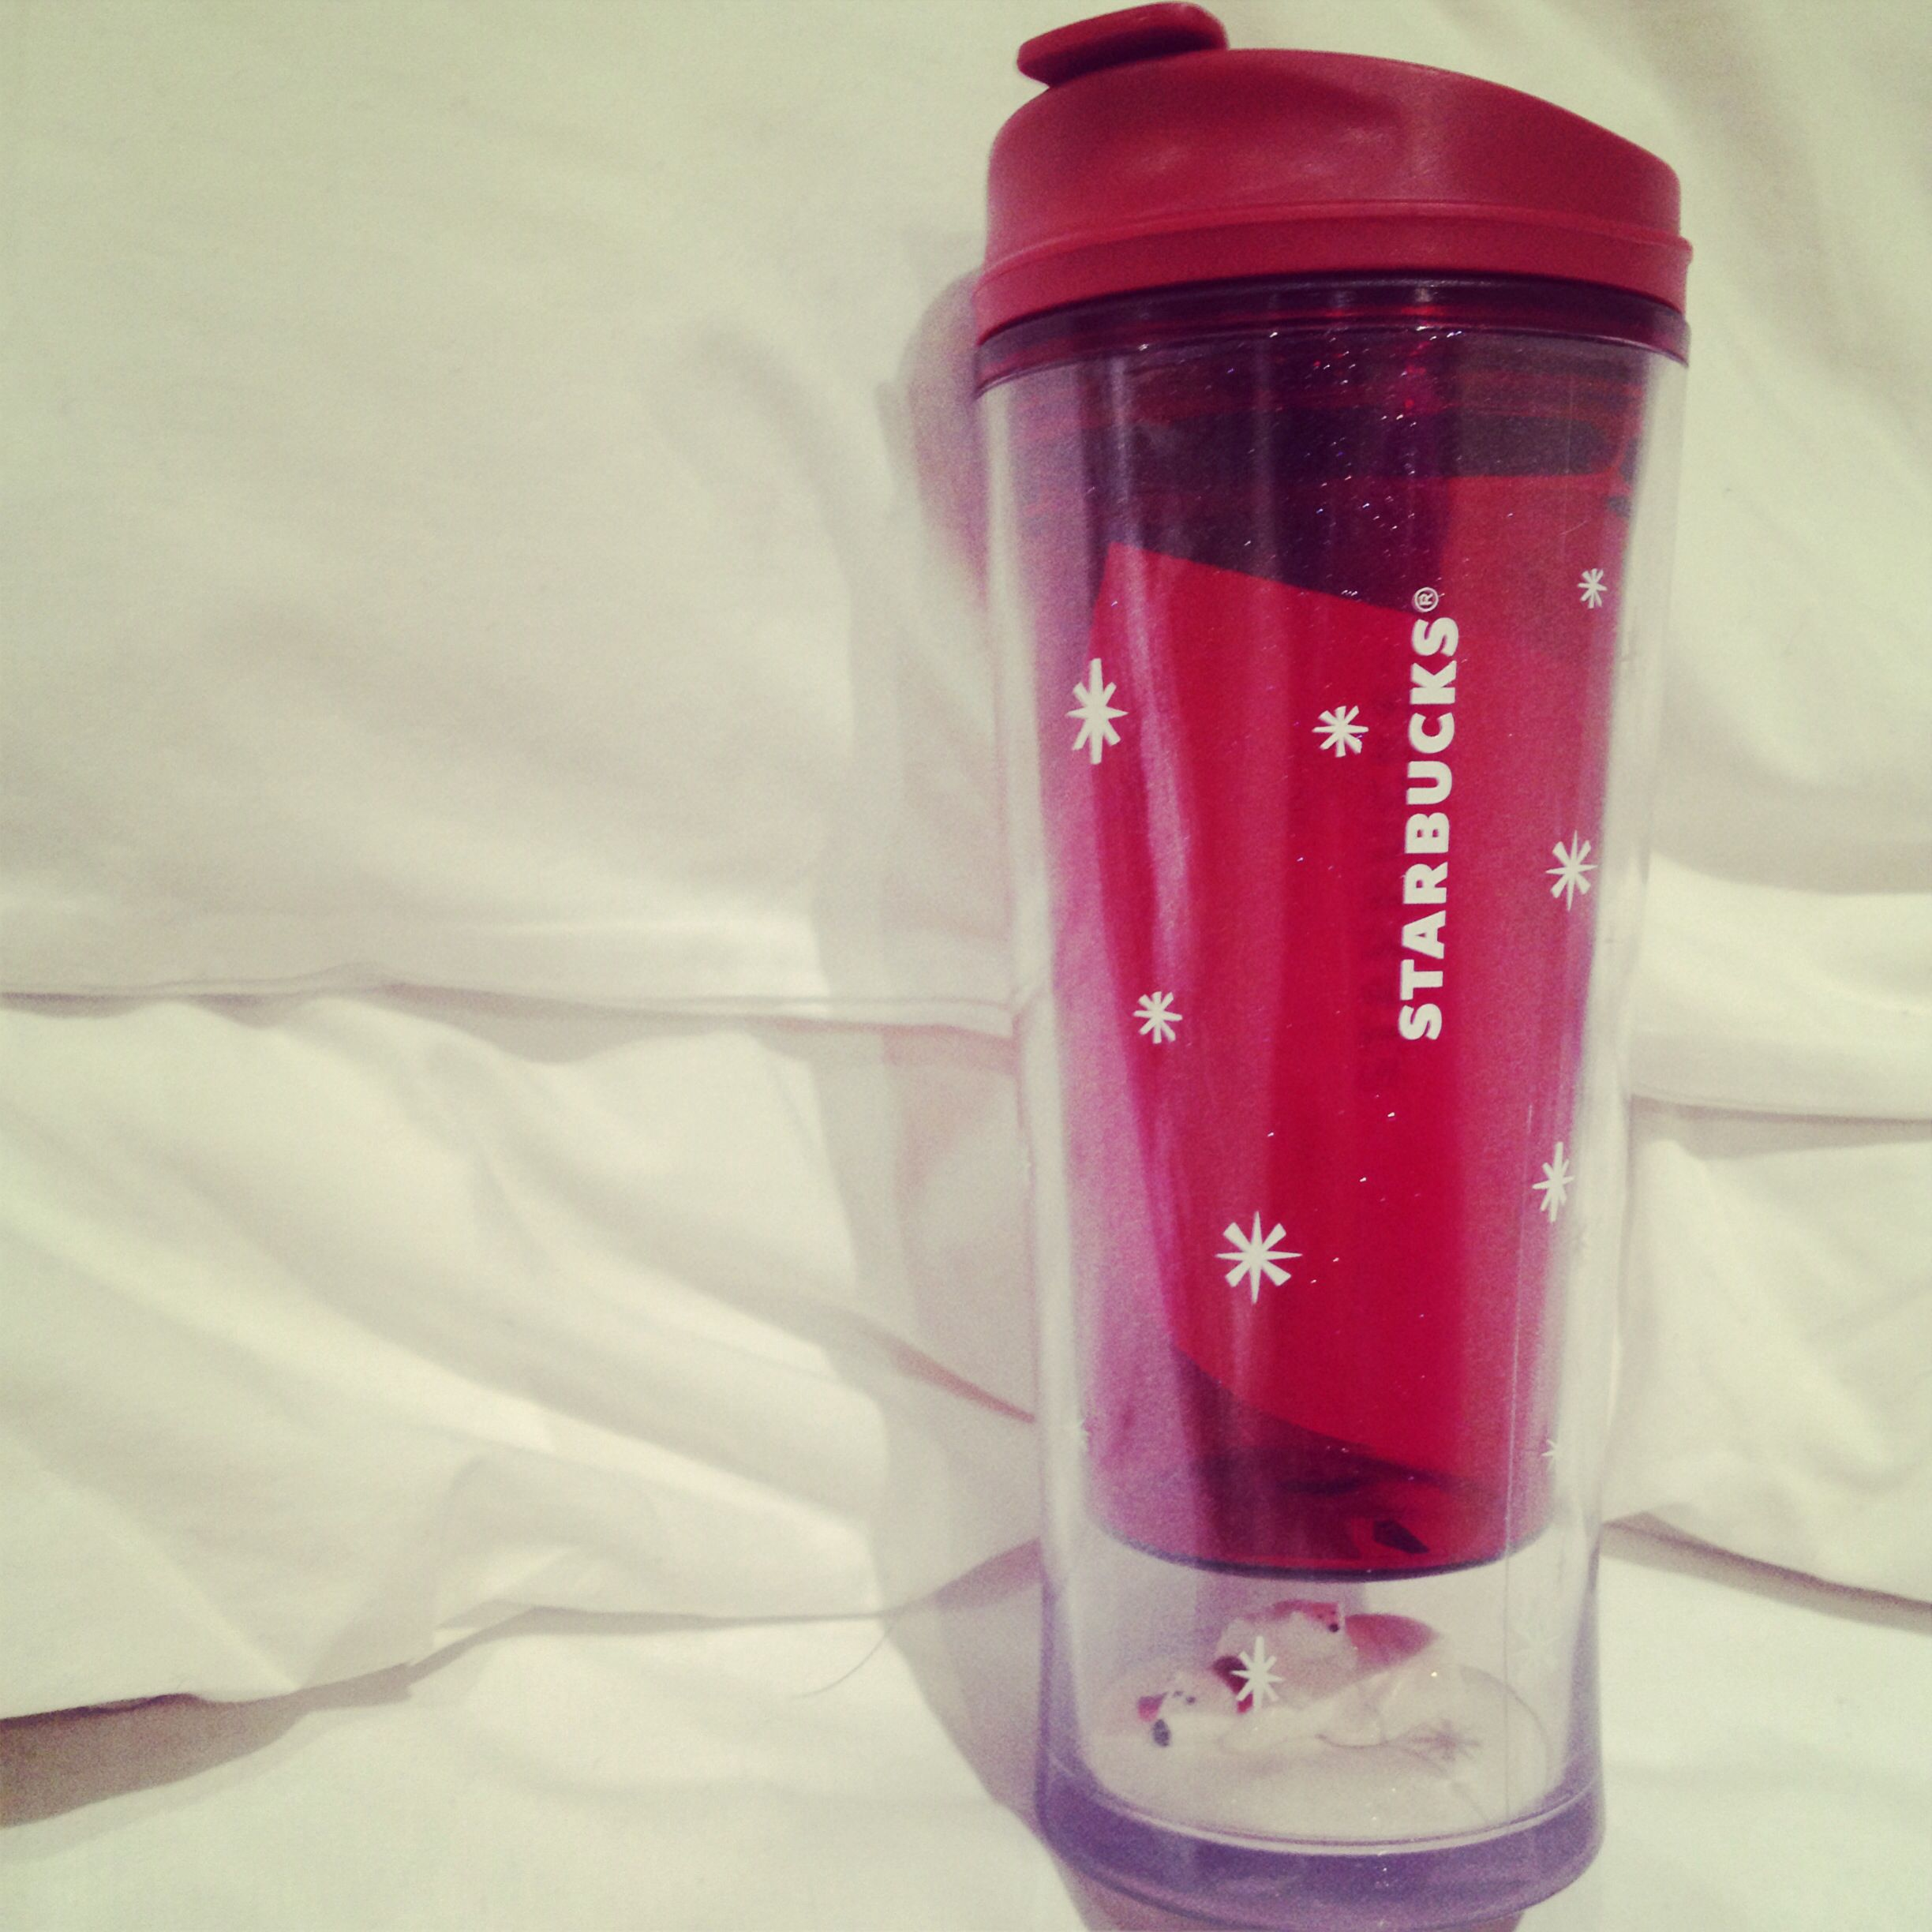 I really want a starbucks tumbler this year, doesn't matter what ...